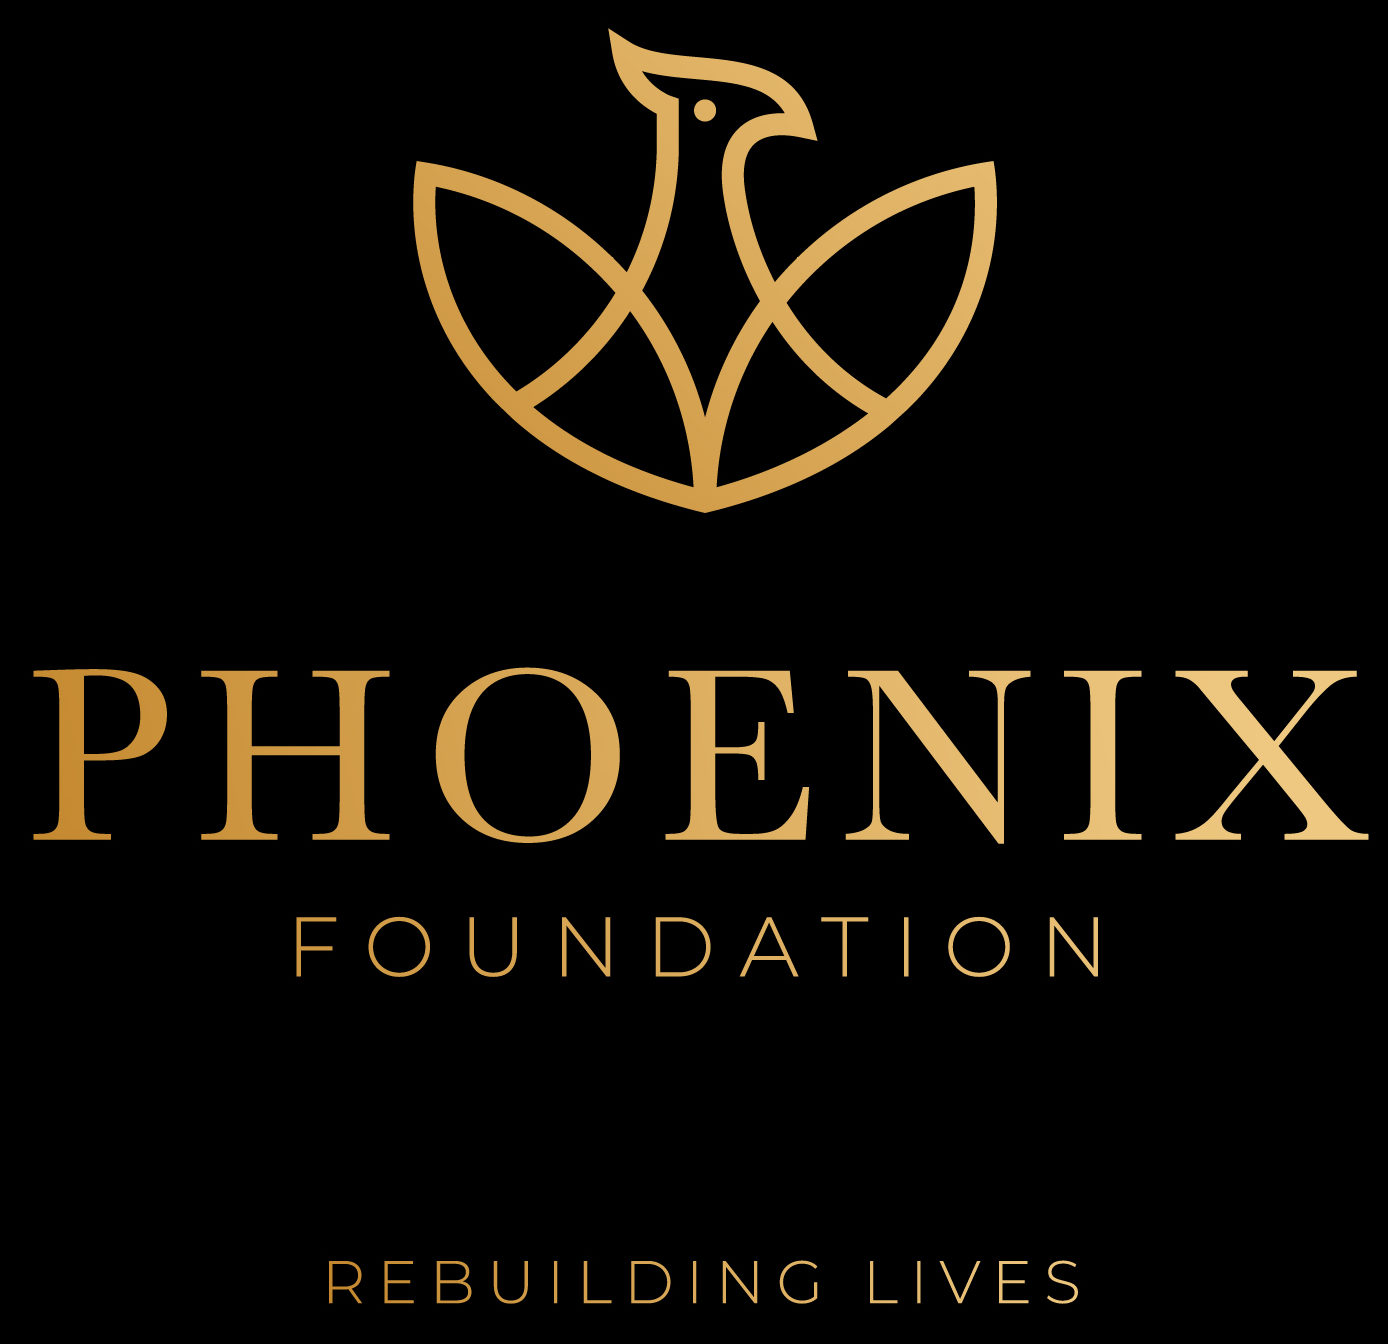 Phoenix Foundation